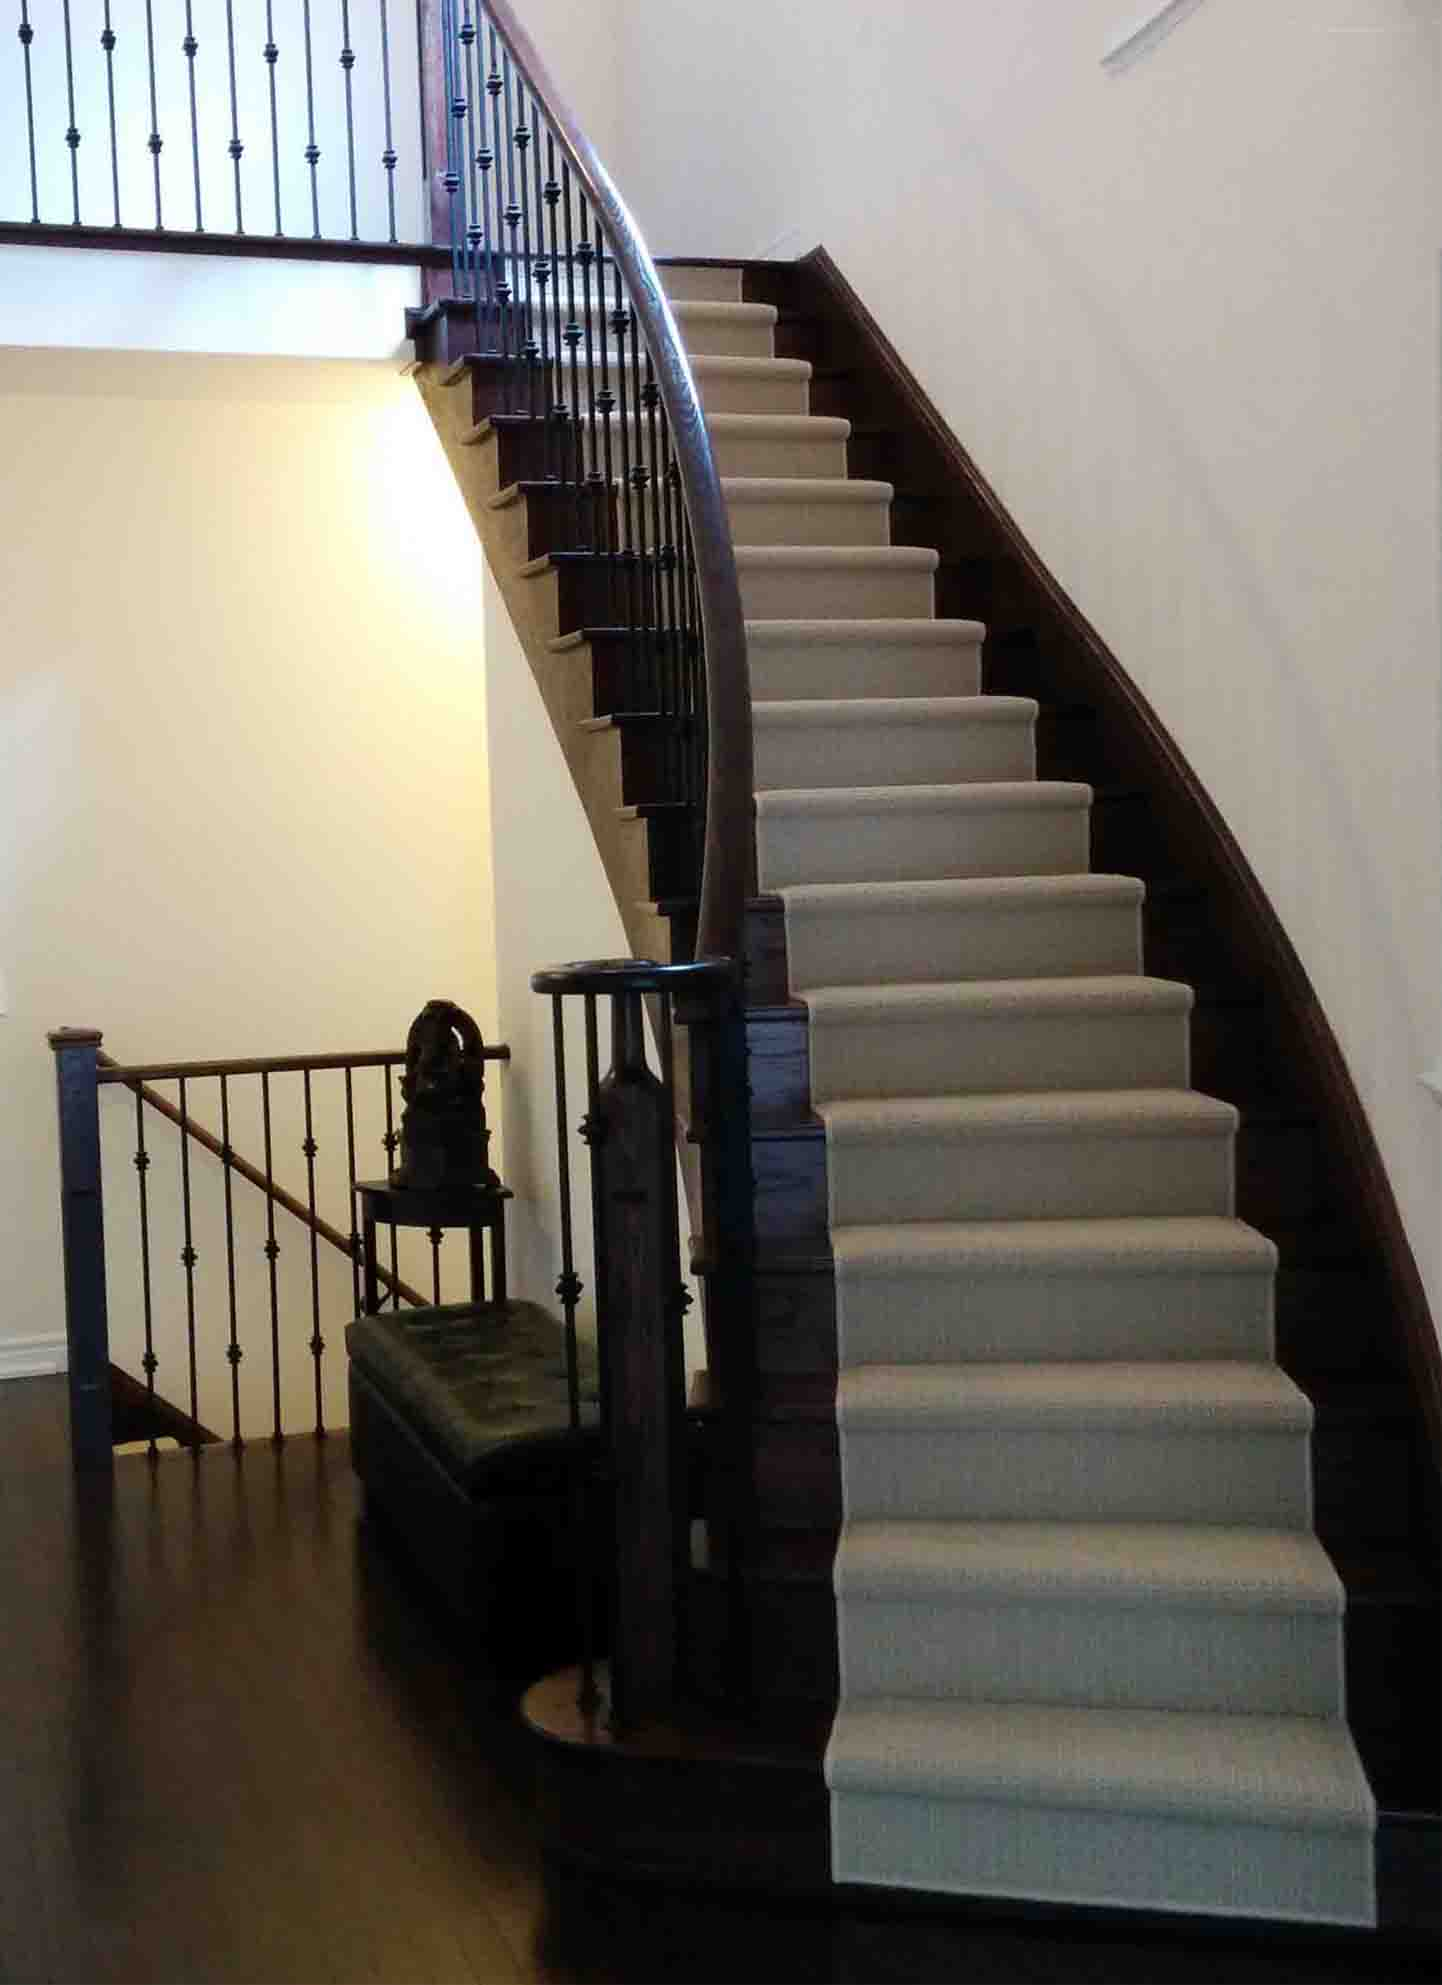 25 Best Ideas About Carpet Stair Runners On Pinterest: Carpet Runner For Stairs Over Carpet